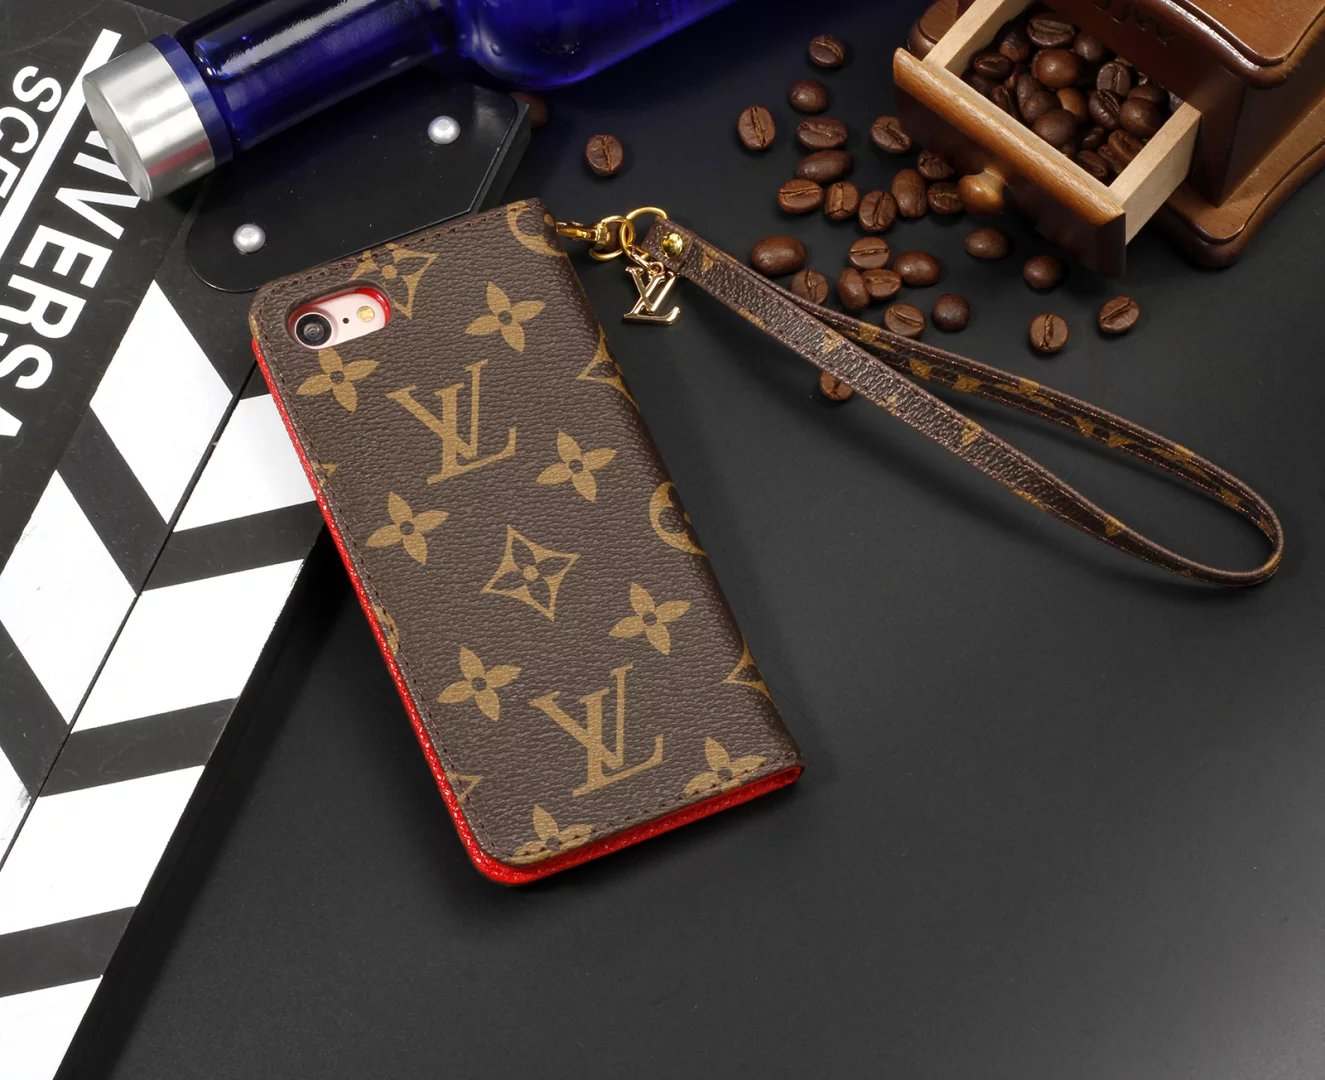 custom iphone 8 Plus s cases iphone 8 Plus nice cases Louis Vuitton iphone 8 Plus case black iPhone 8 Plus cover apple 6 s case cute phone case iPhone 8 Plus mofi iPhone 8 Plus iphone personalized case cover i phone 6